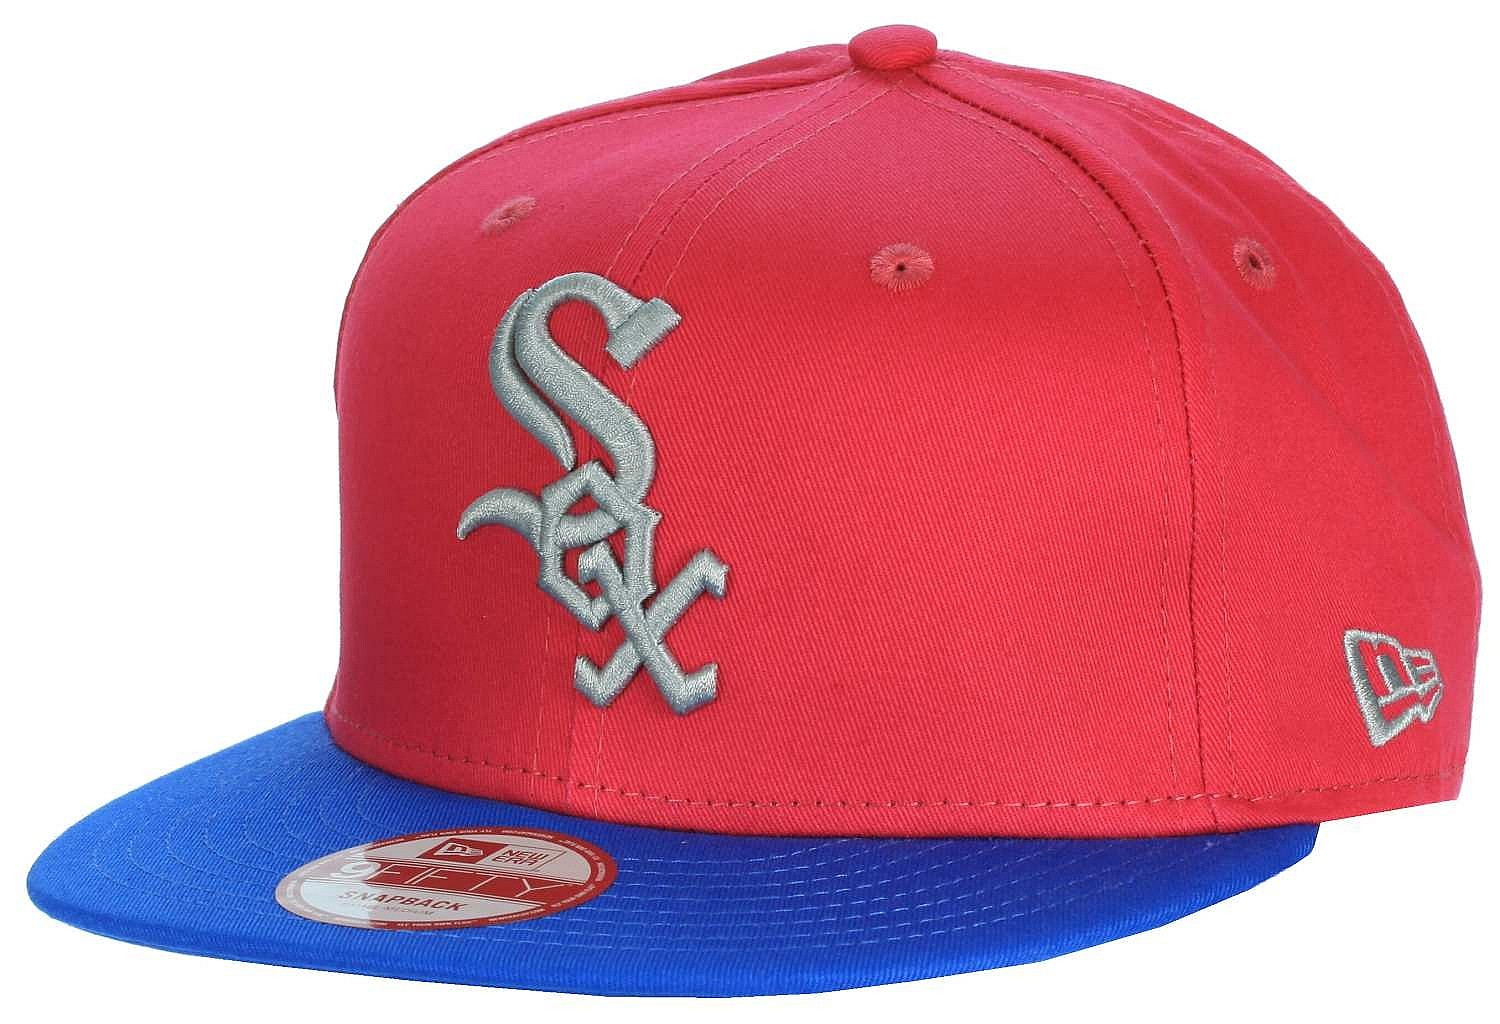 low priced 52a88 79758 ... order cap new era 9fi seasonal pop mlb chicago white sox bright rose  snapshot blue silverwing